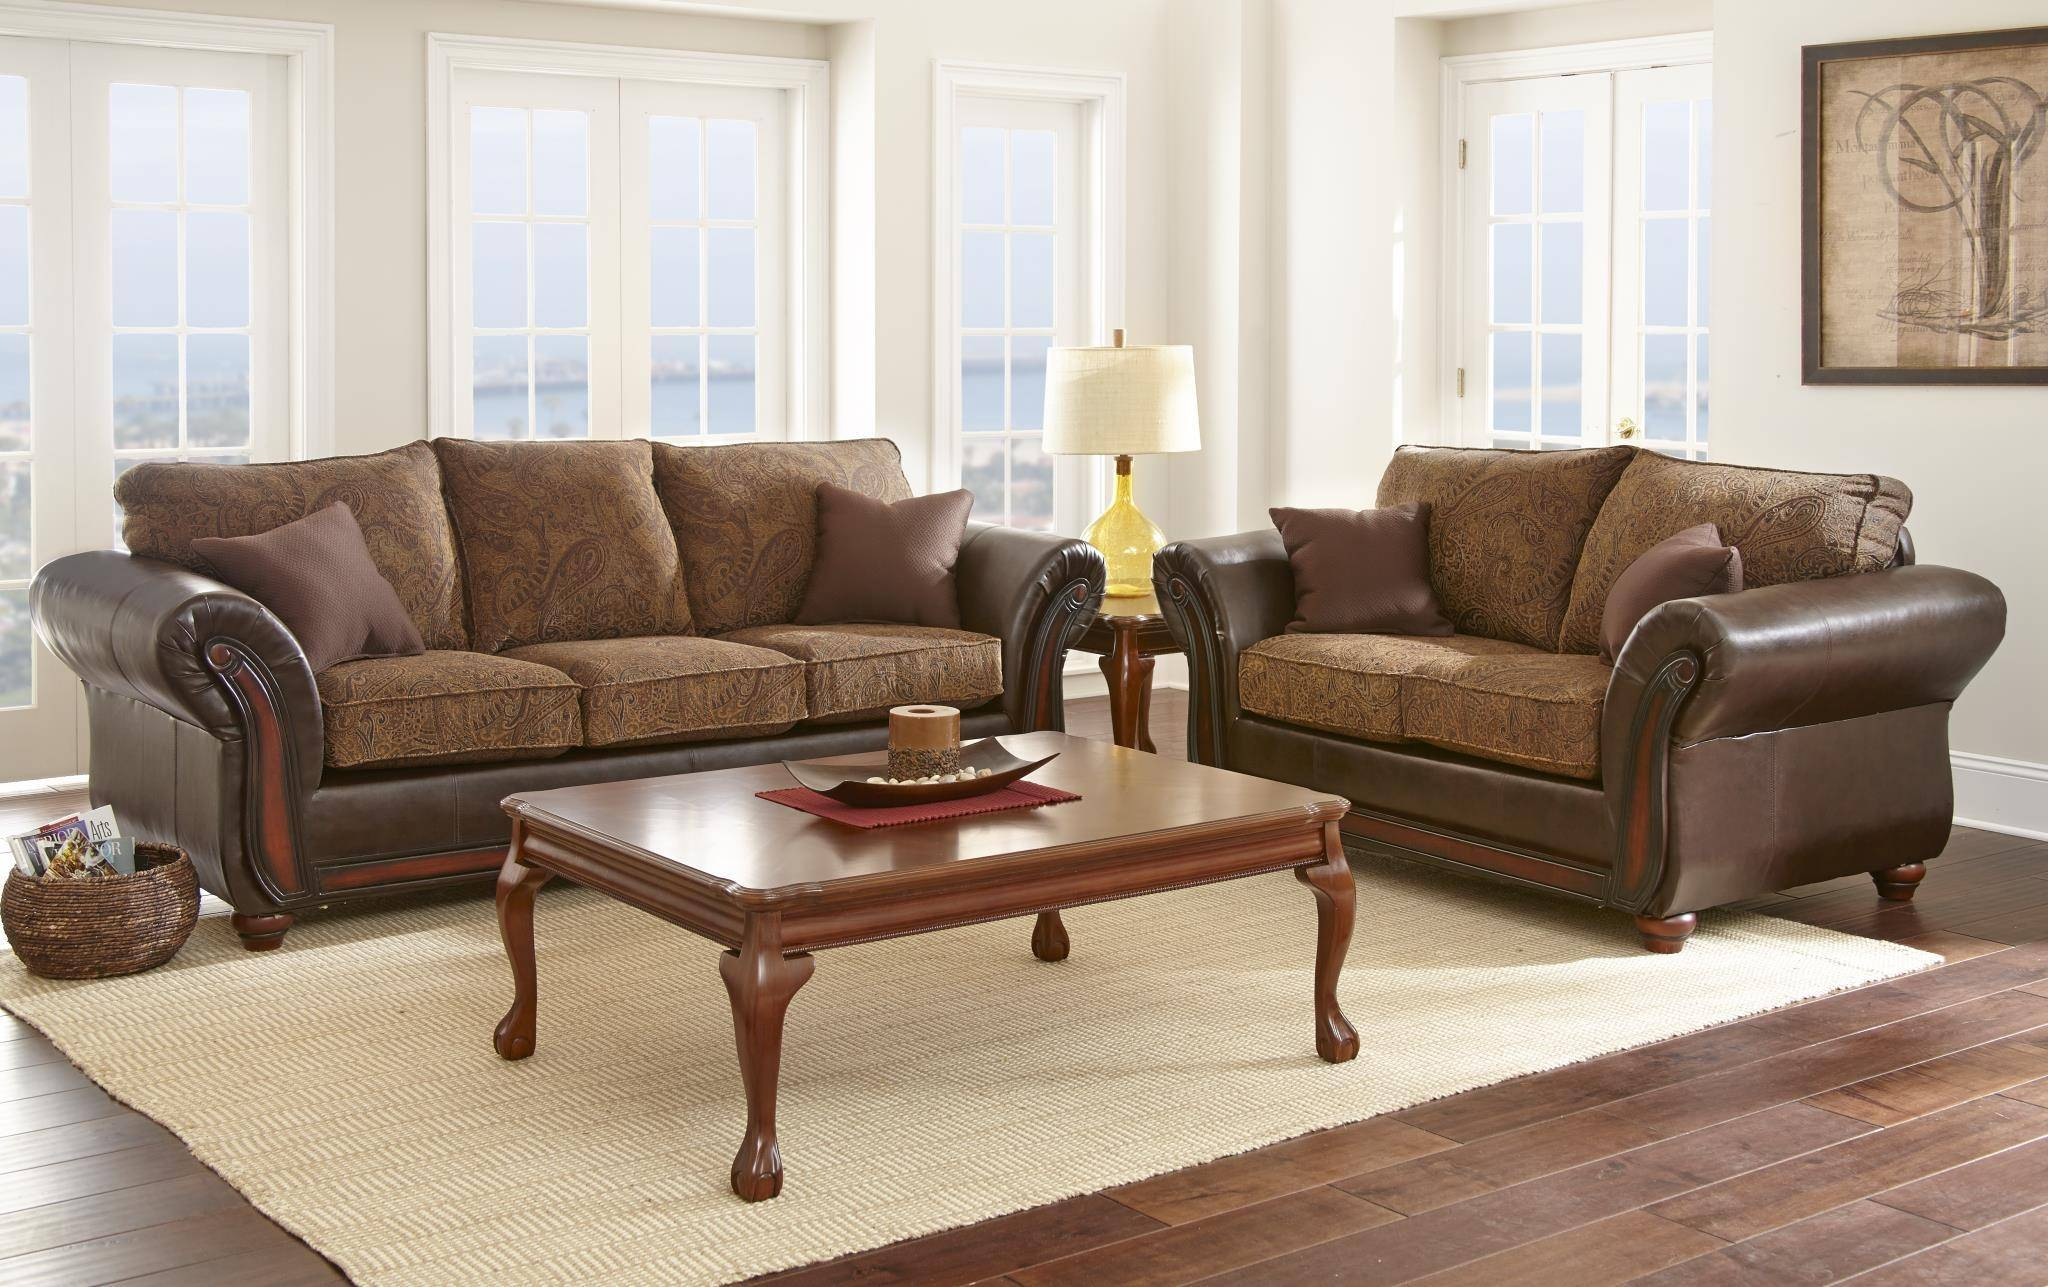 Myco Furniture Brigam Classic Dark Brown Leather Fabric Living regarding Tan Leather Living Room Set